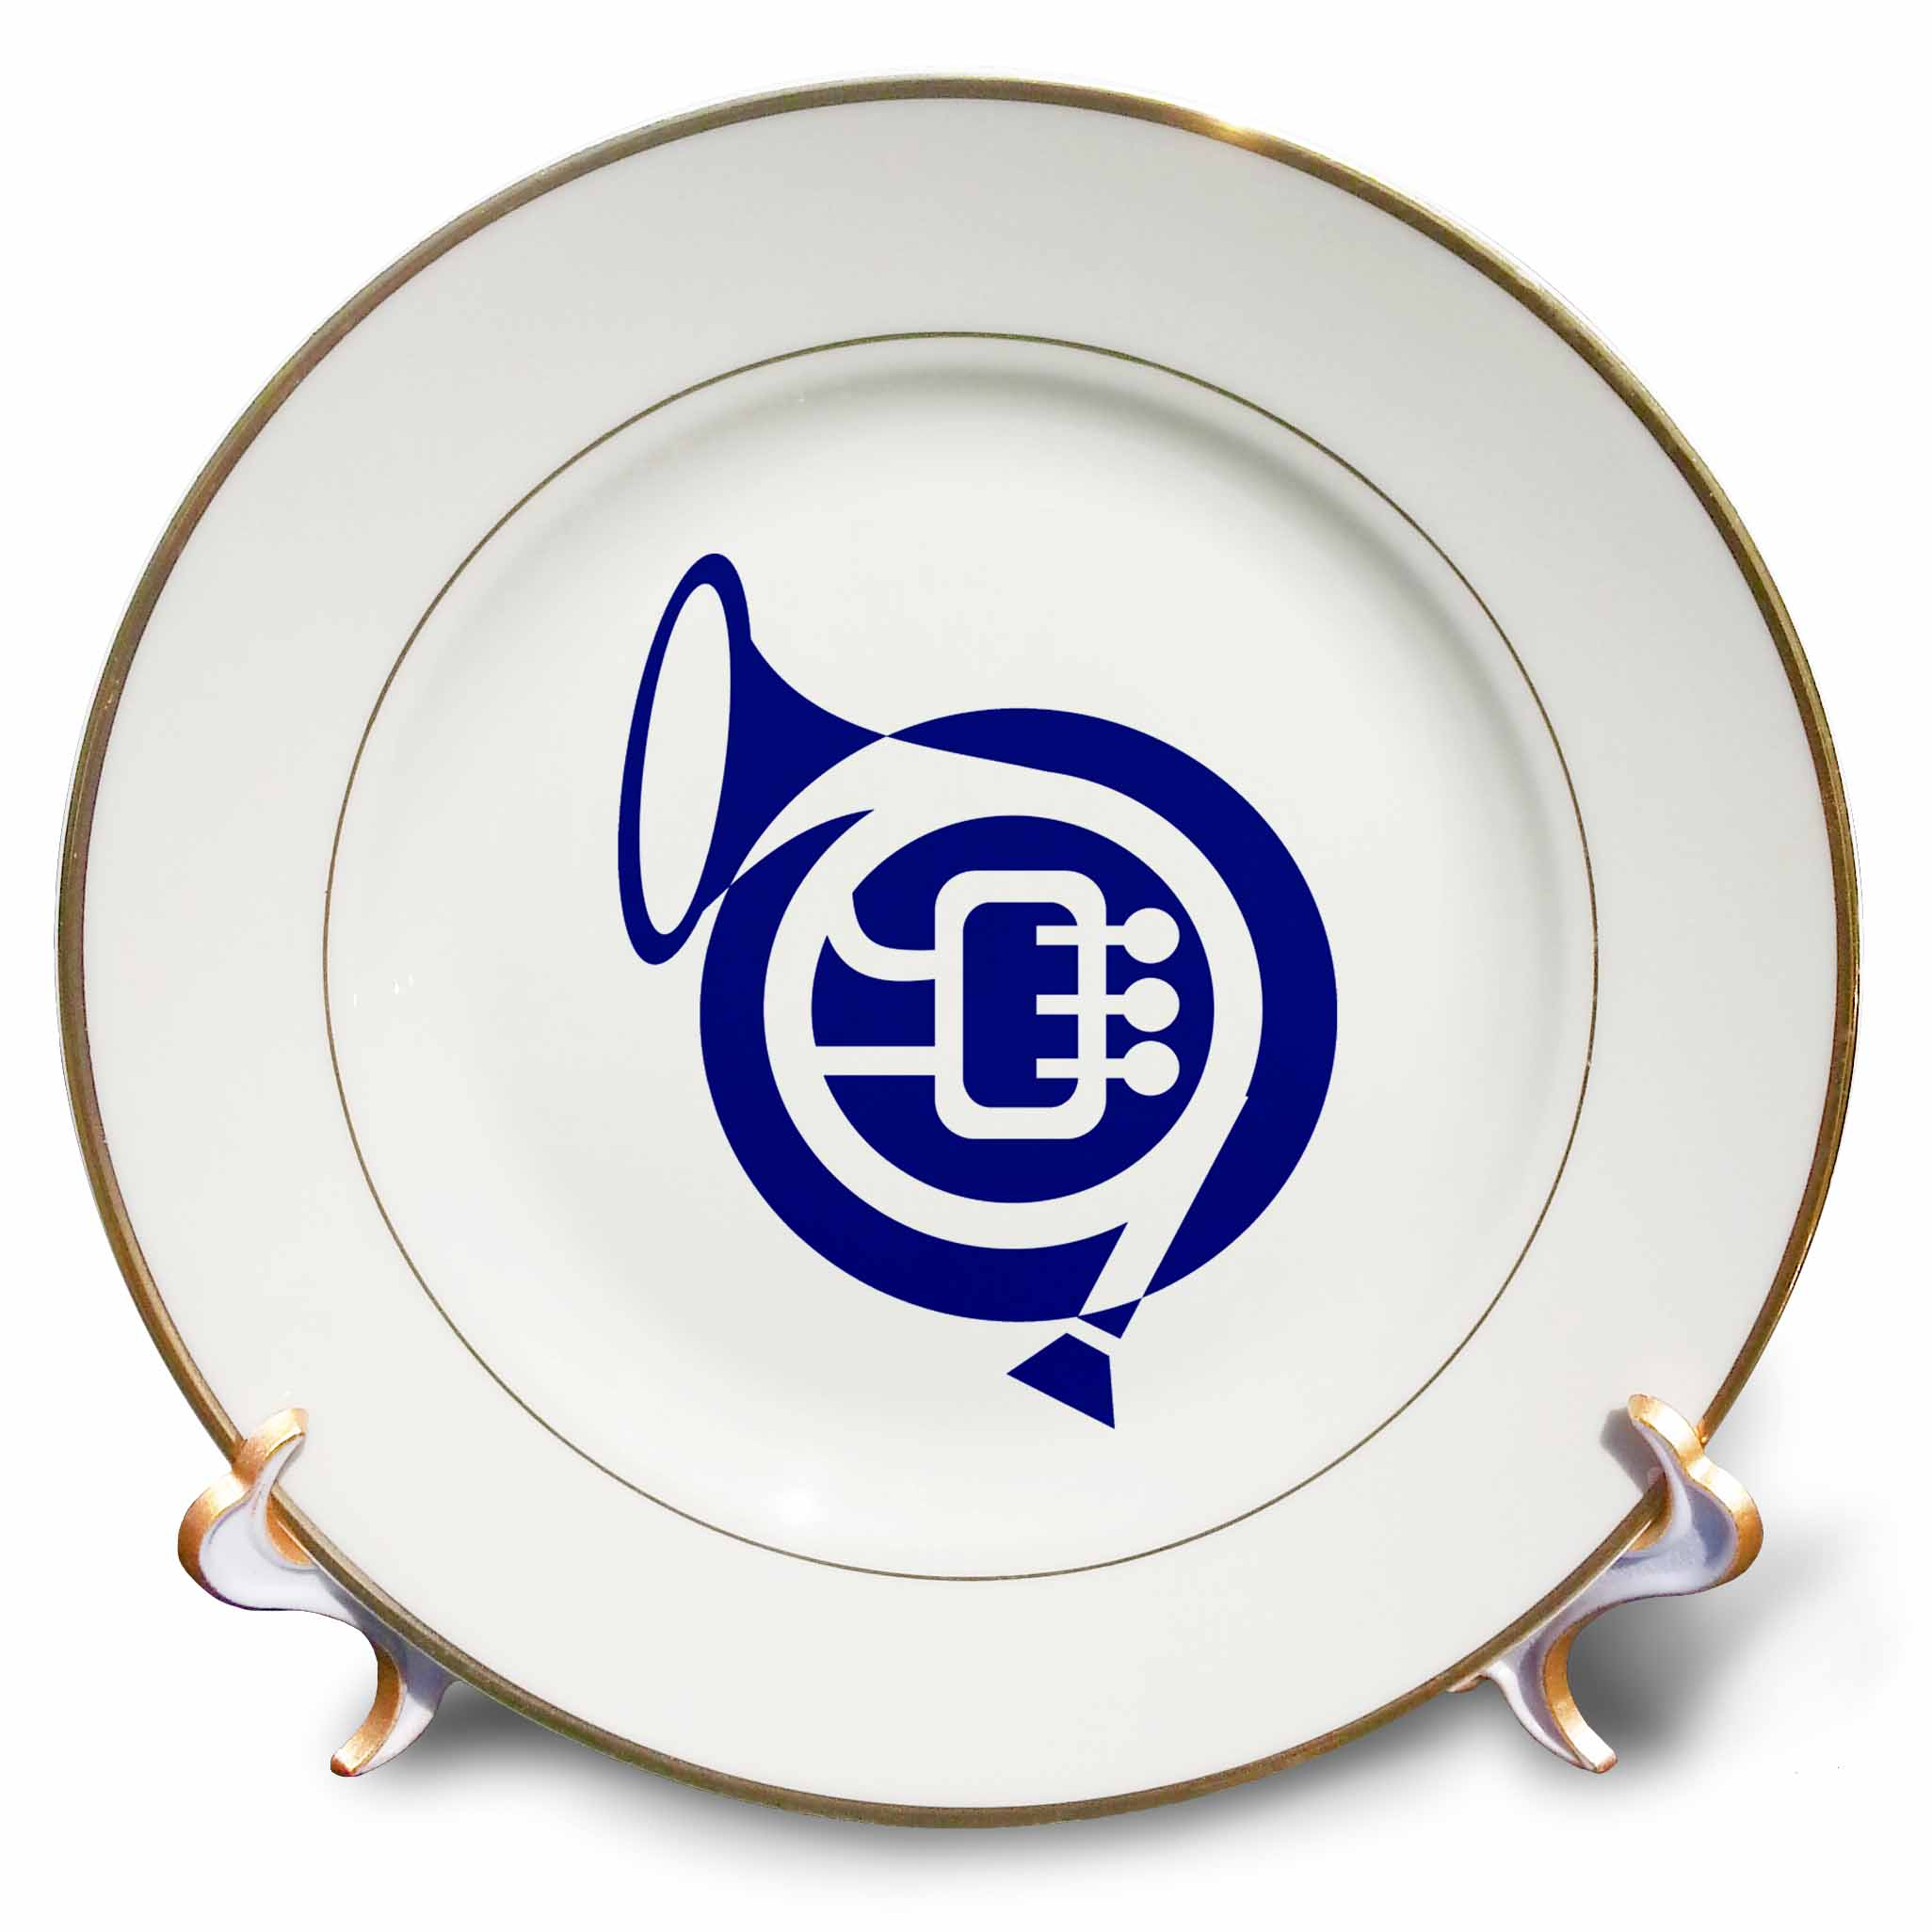 3dRose French horn stylized simple blue, Porcelain Plate, 8-inch